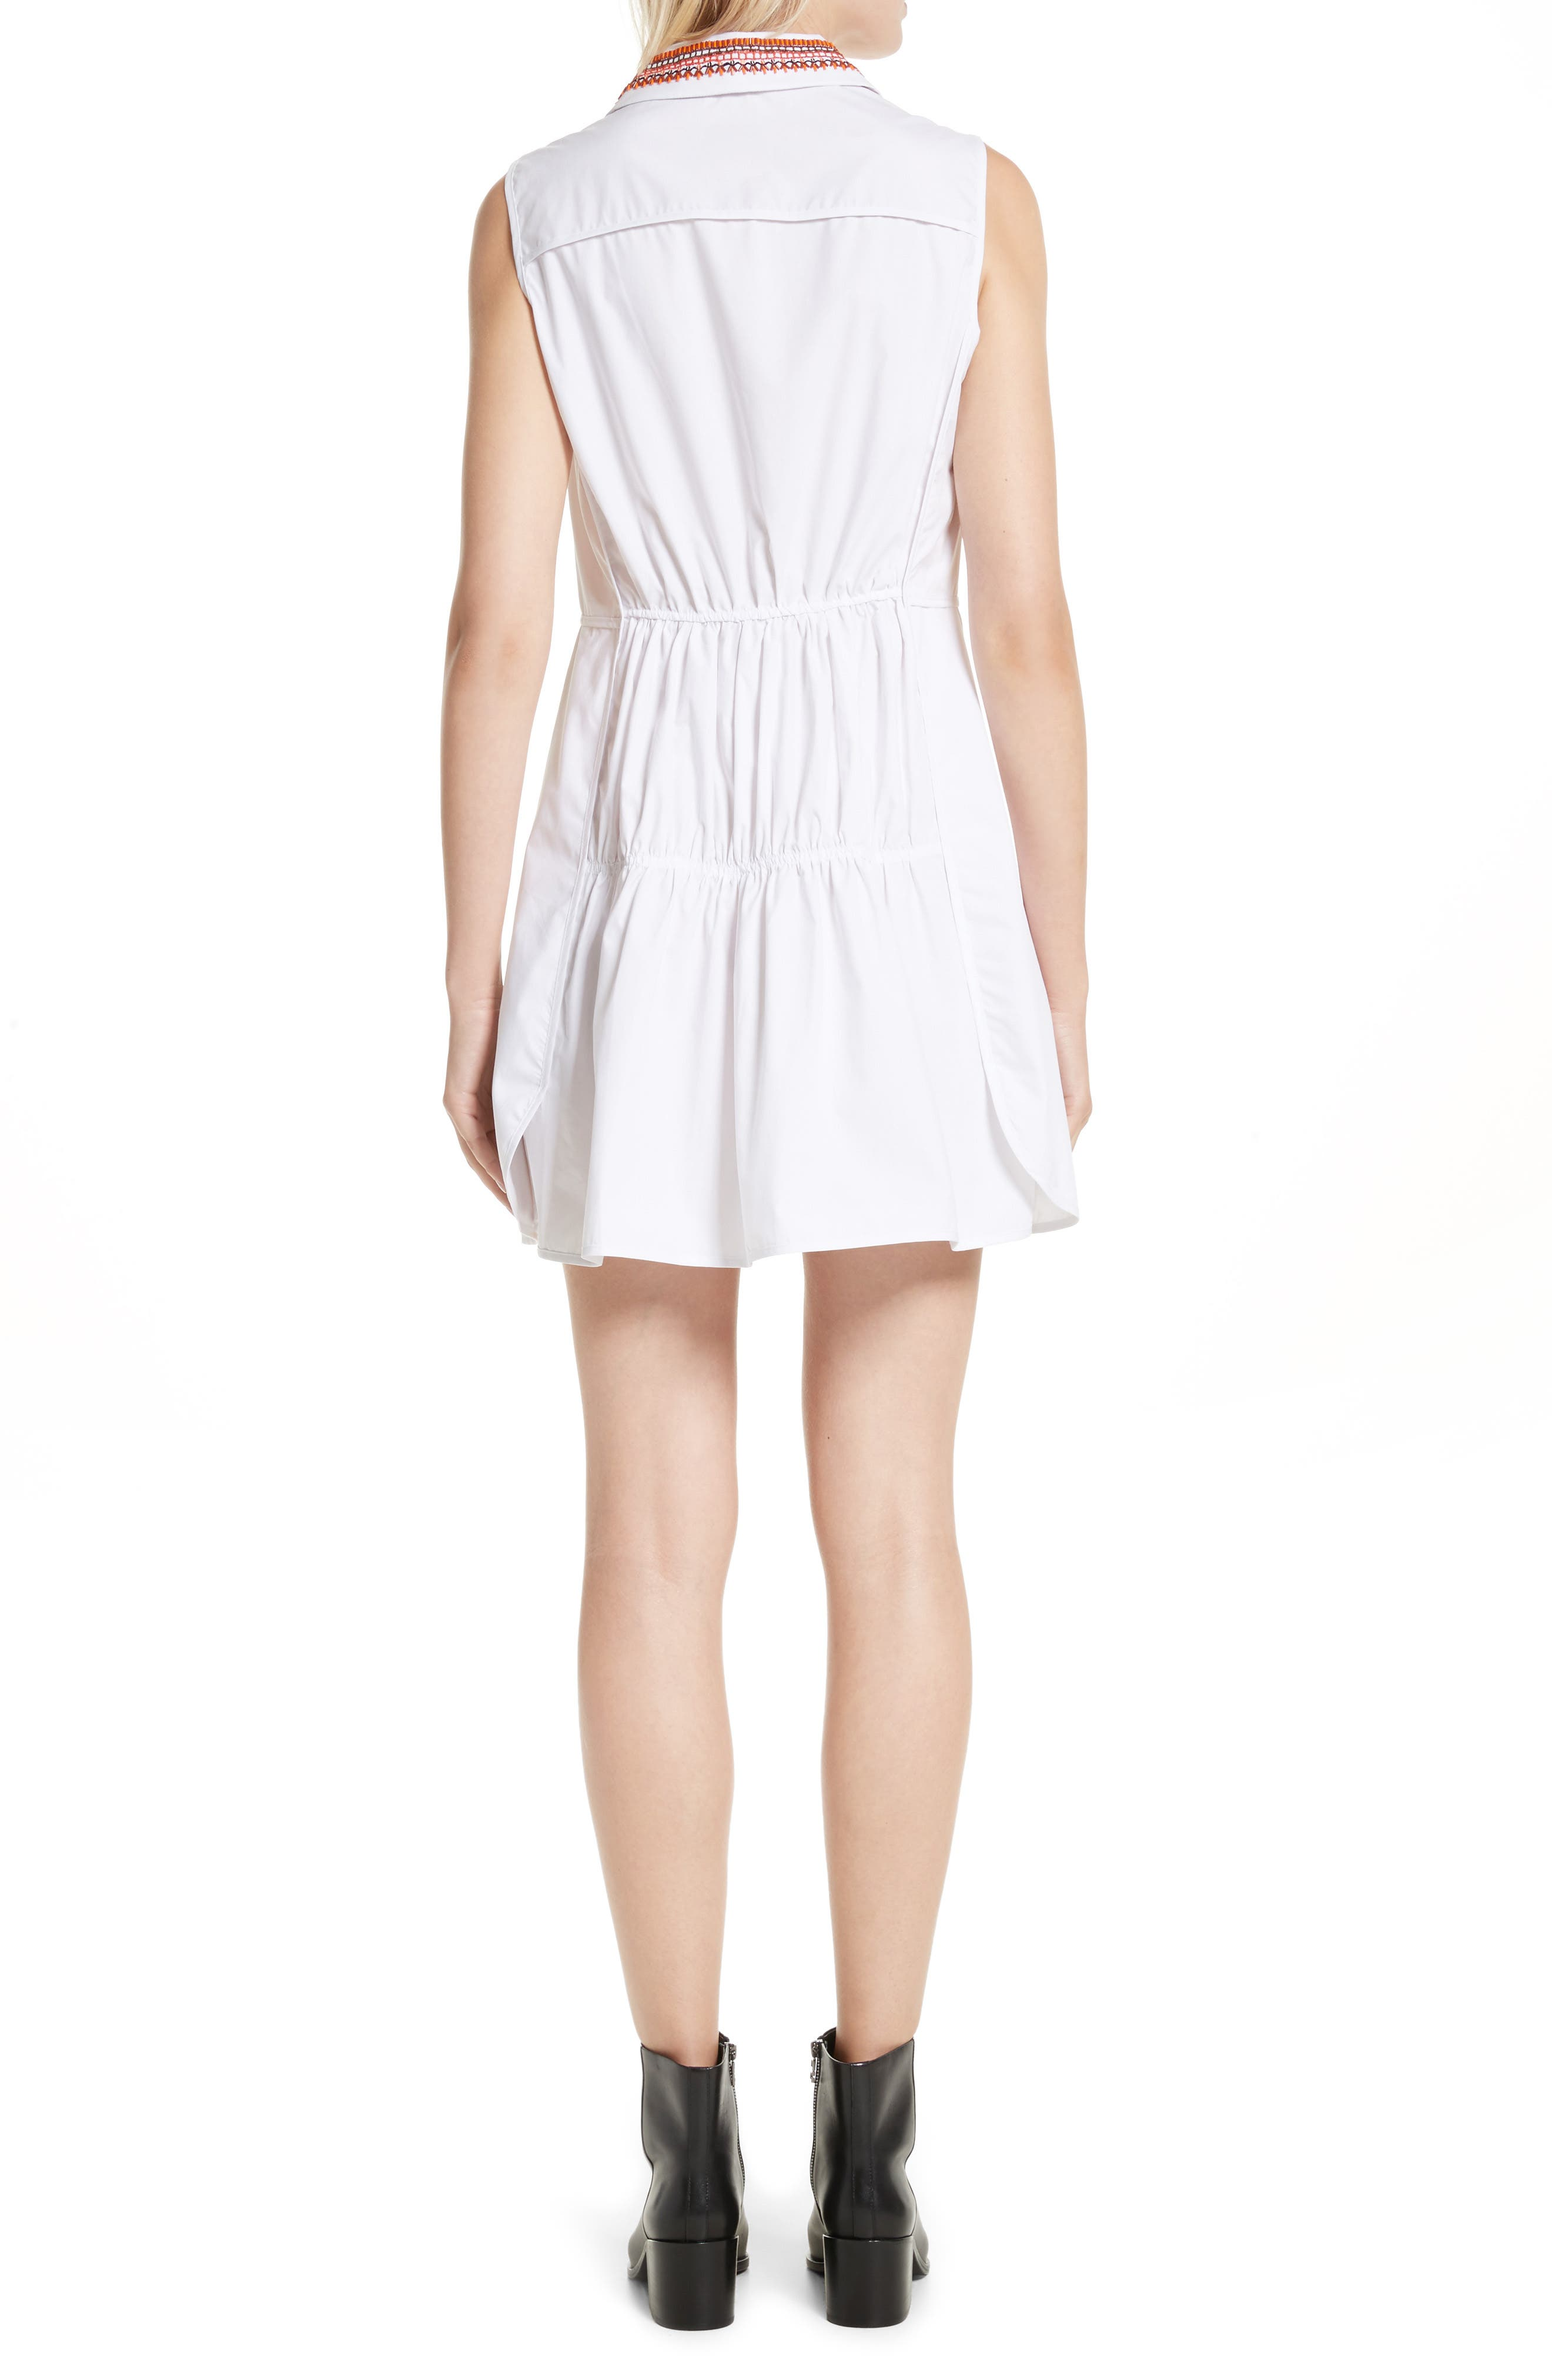 Transformer Poplin Dress with Detachable Embroidered Collar,                             Alternate thumbnail 2, color,                             White